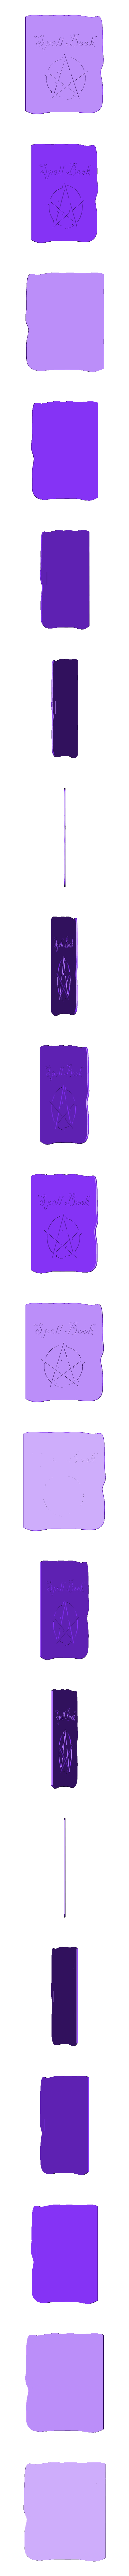 Spell Book Lid.stl Download free STL file Halloween 'Spell Book' Box or themed 'Jack-in-the-box' • 3D printing model, Sigma3D